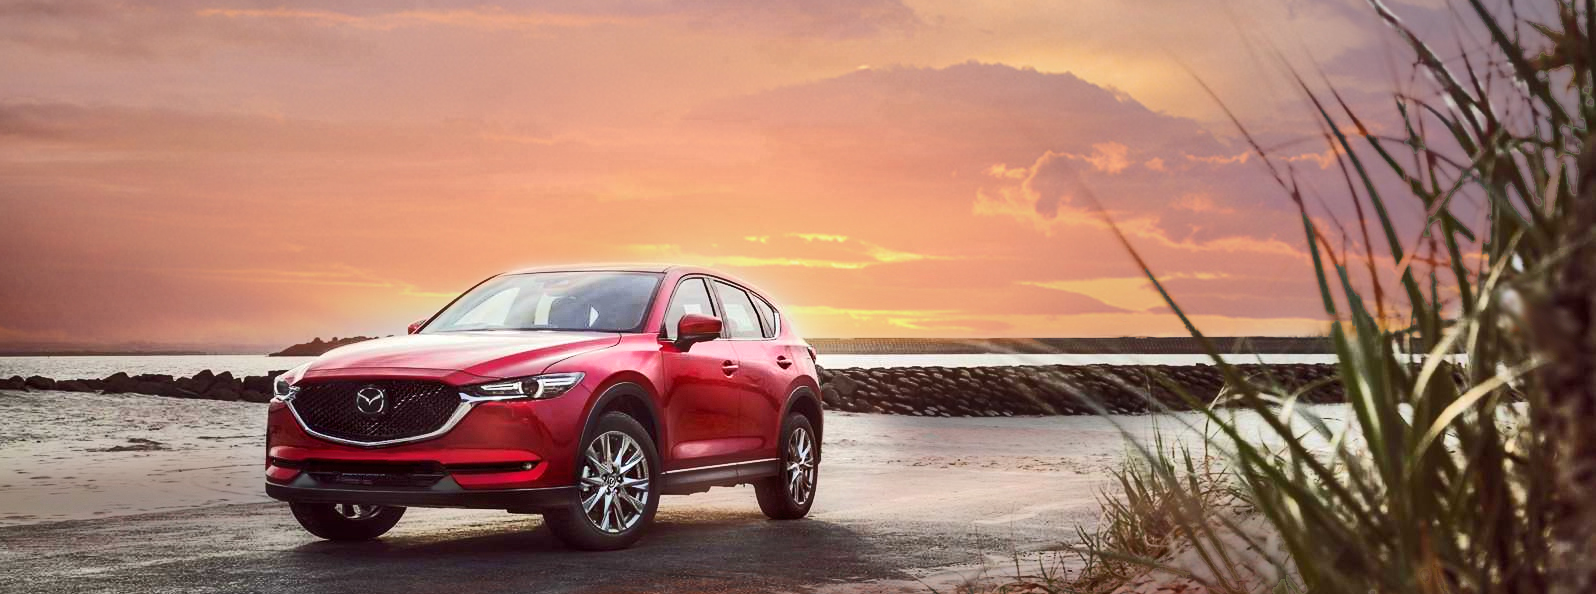 Mazda Cx 5 Towing Capacity >> 2019 Mazda Cx 5 Towing Capacity Get The Jet Skis Ready